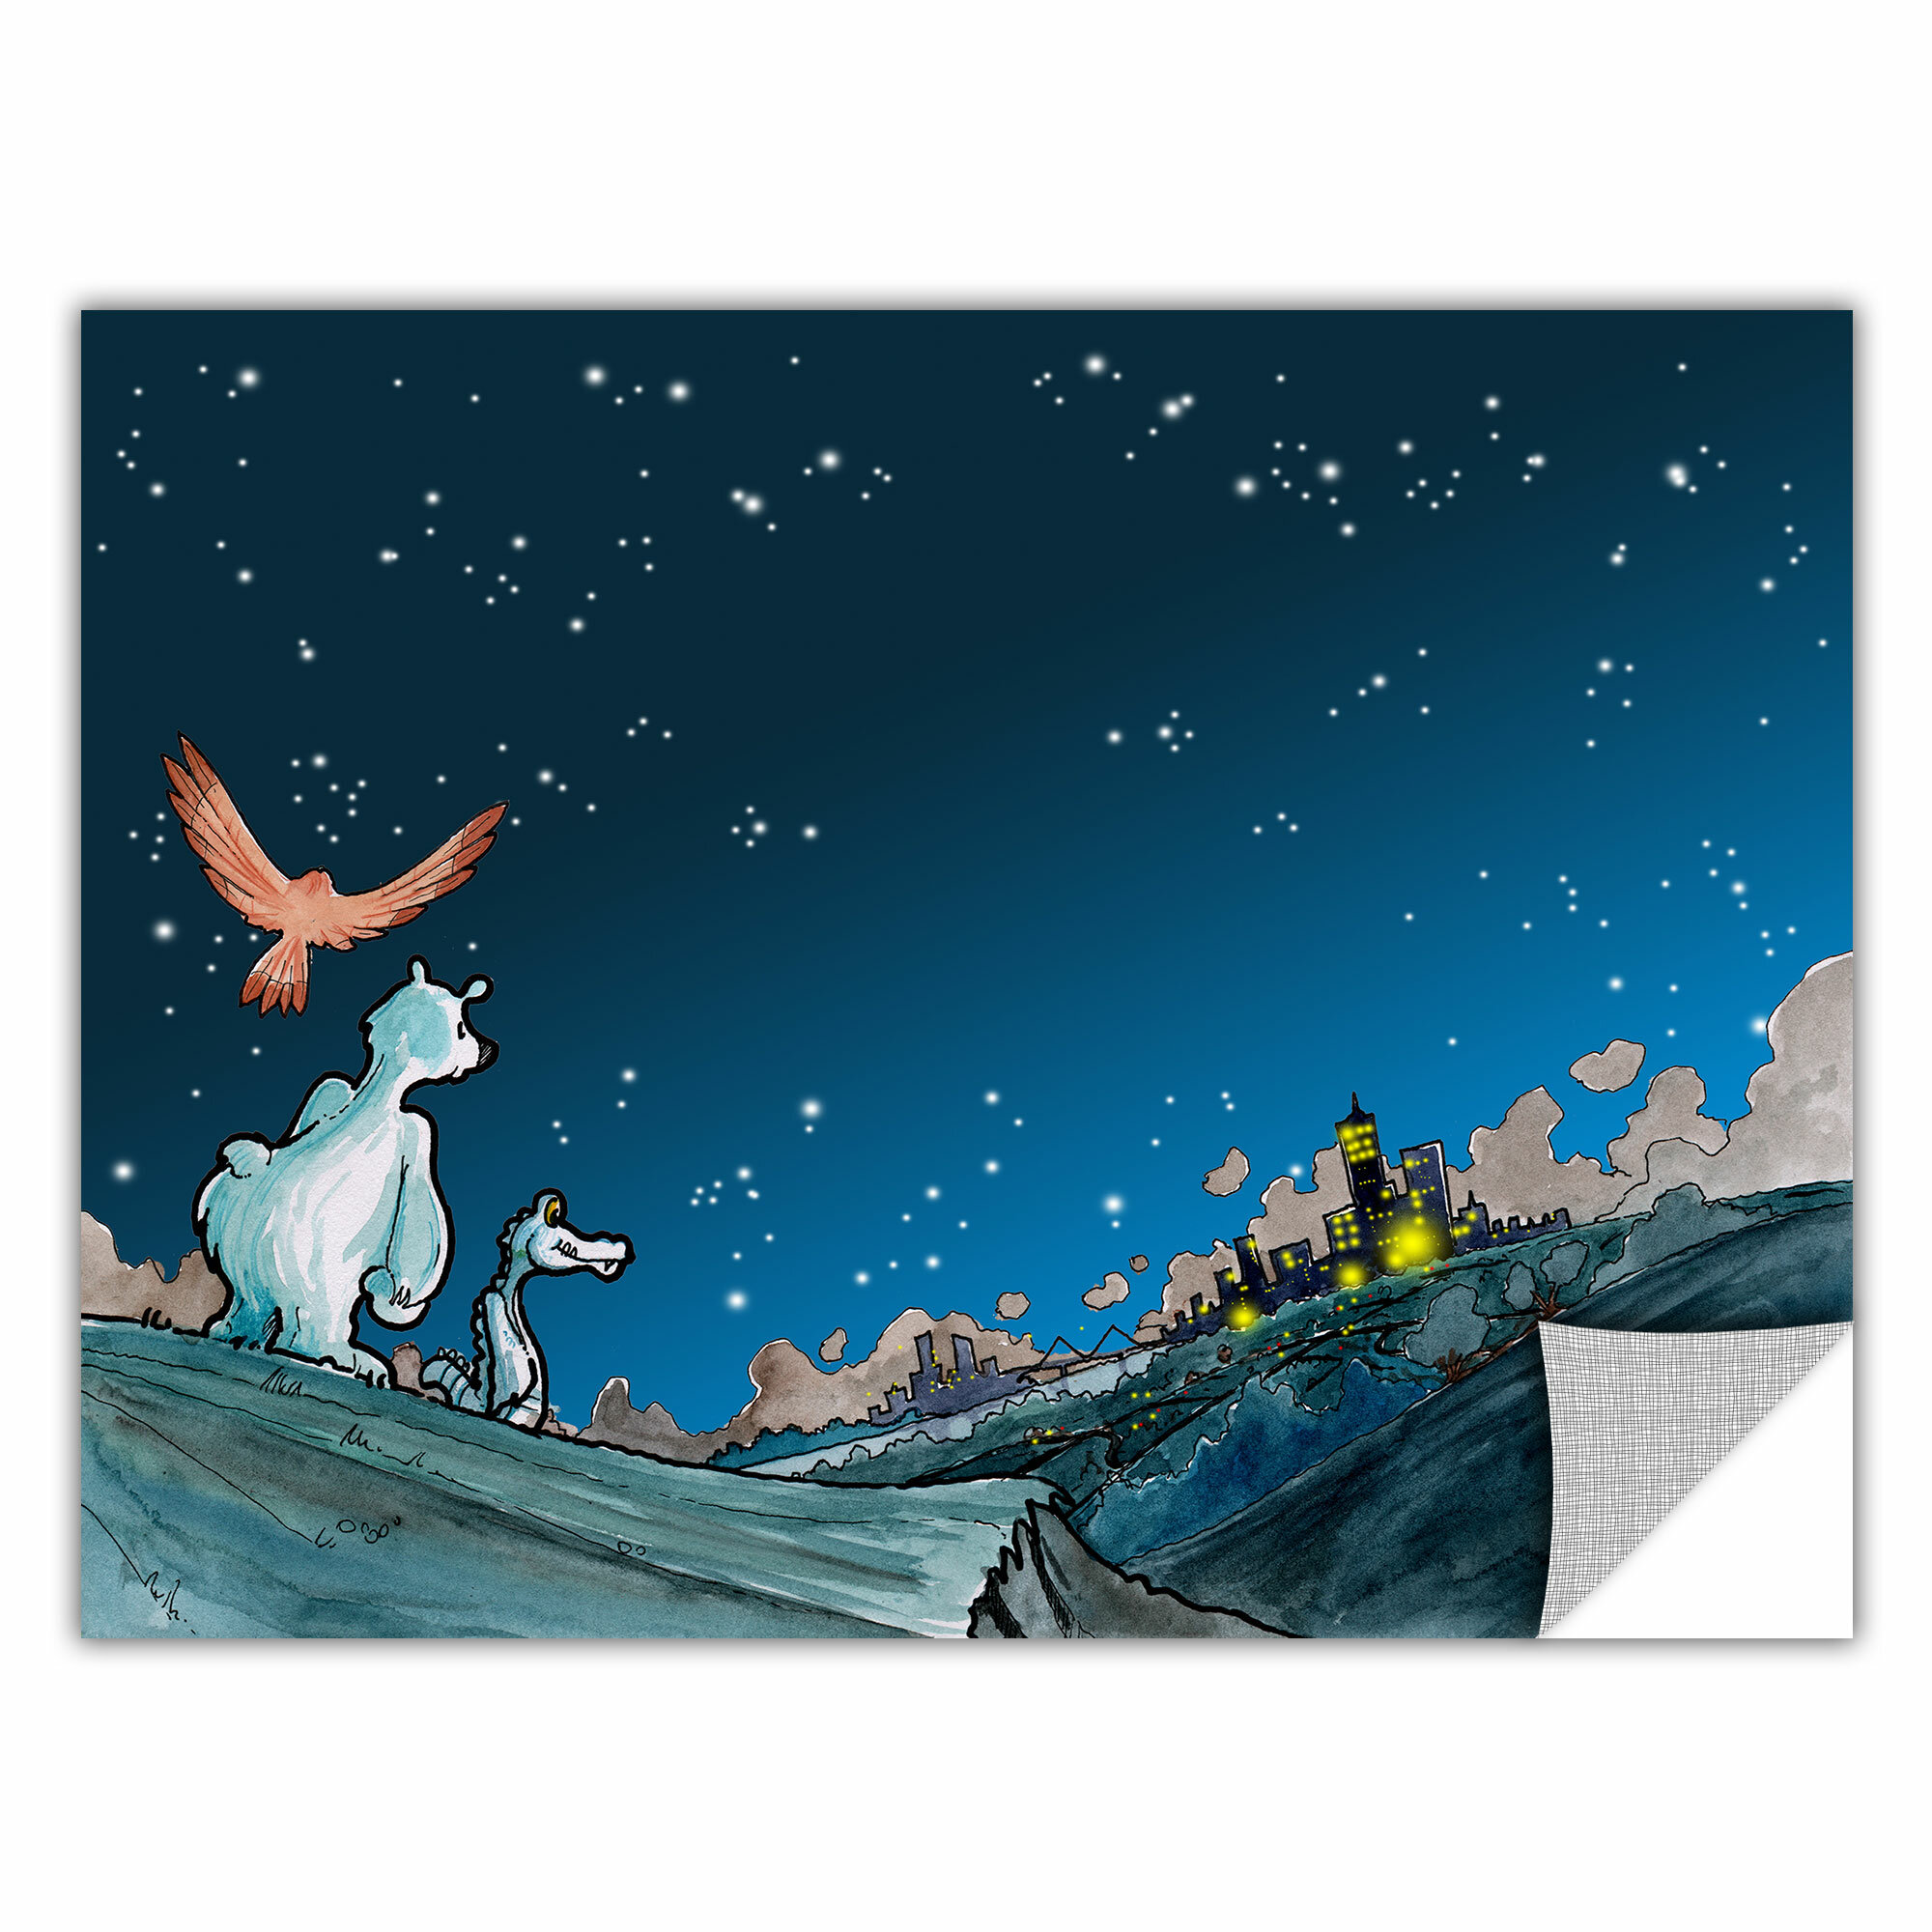 24 by 32-Inch ArtWall ArtApeelz Luis Peres Polar 2 Removable Wall Art Graphic